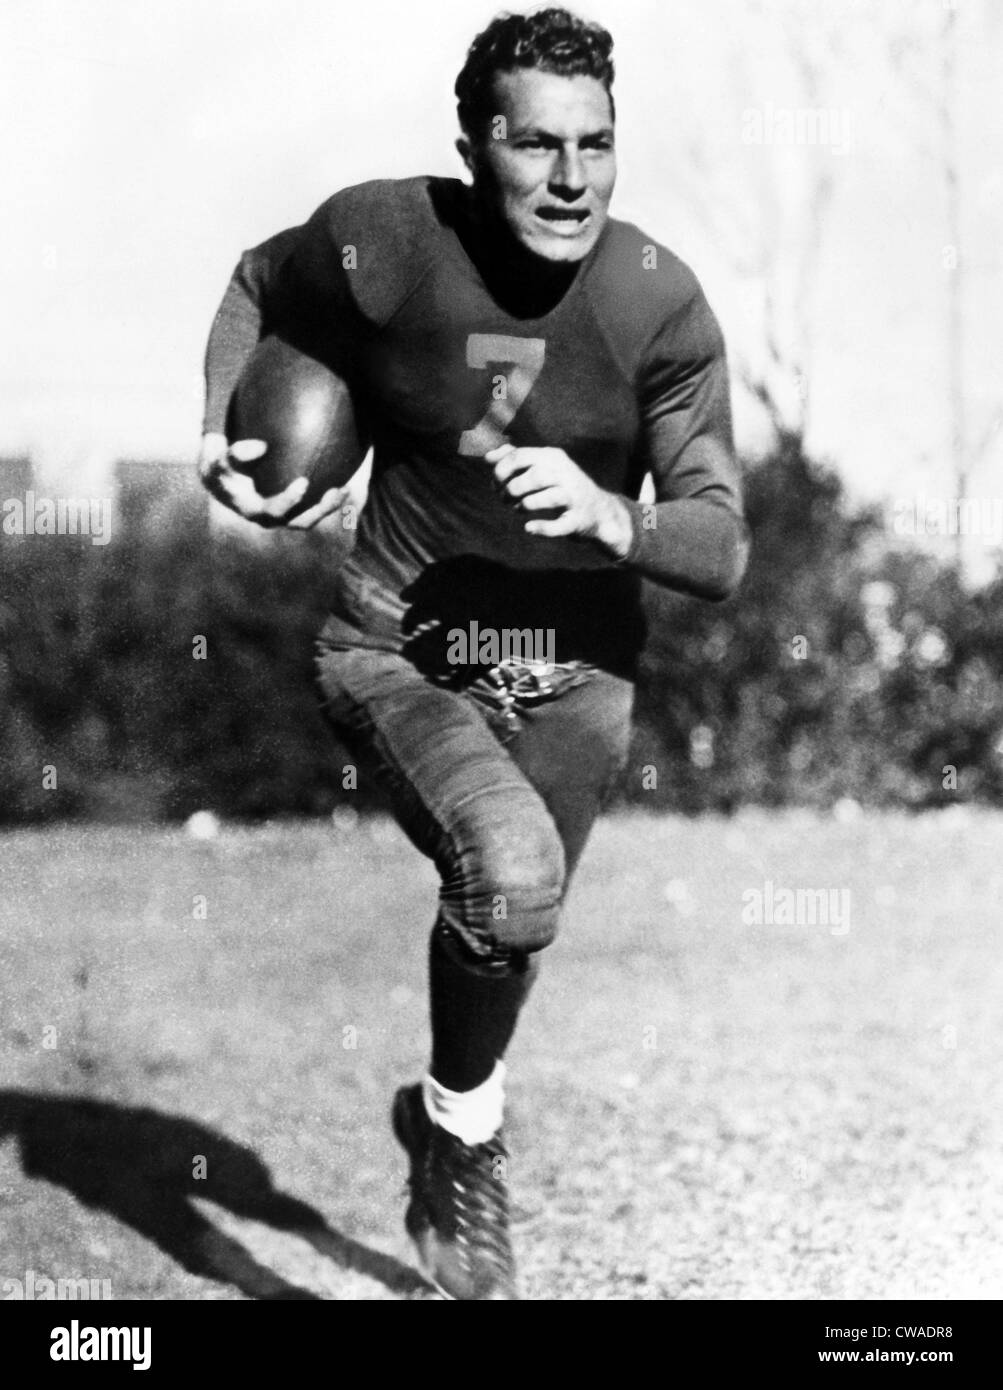 Don Hutson, Alabama end from 1932-1934. ca. 1930s.Courtesy: CSU Archives/Everett Collection - Stock Image